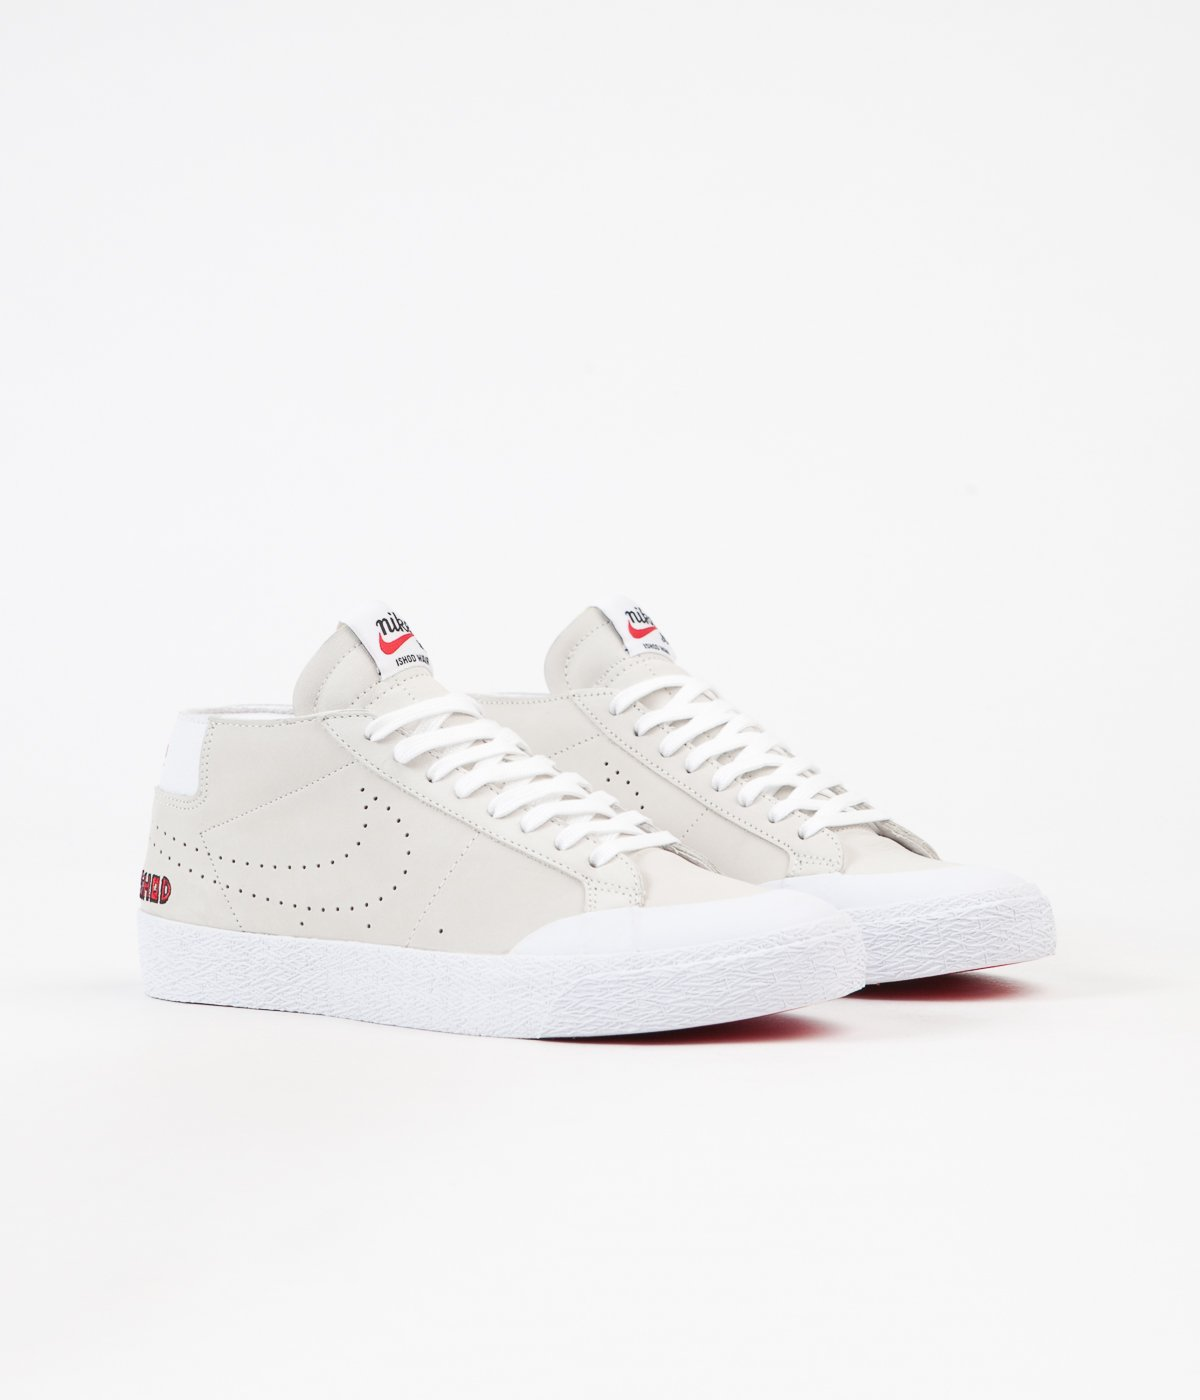 reputable site f93cd e5ab0 Nike SB | Ishod Wair | Back On My BS - BOARD ACTION